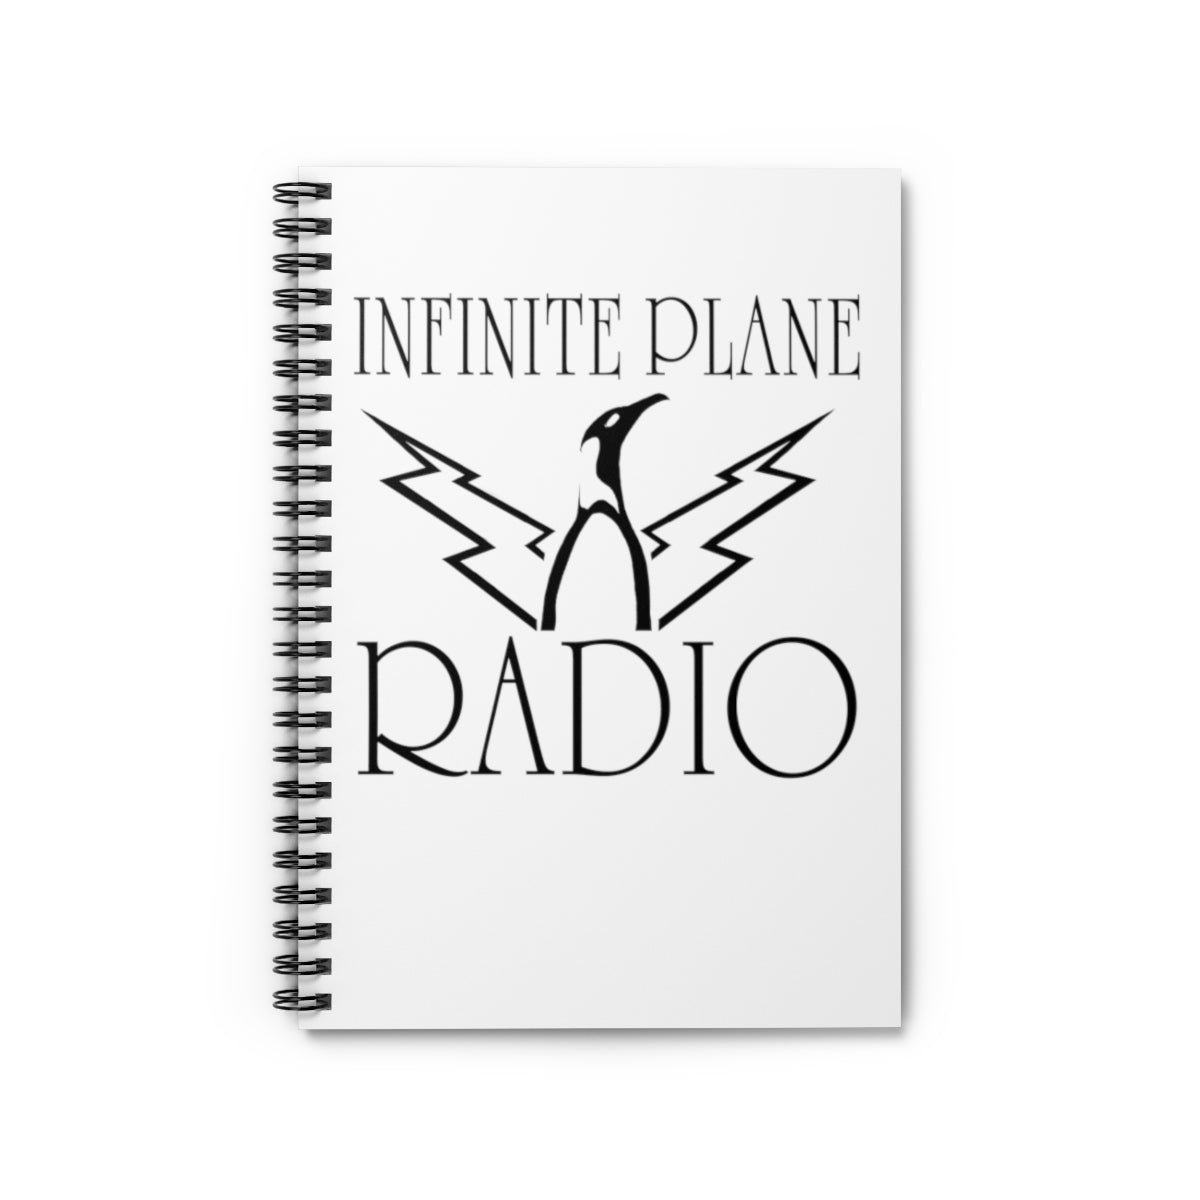 Infinite Plane Radio/ Spiral Notebook - Ruled Line